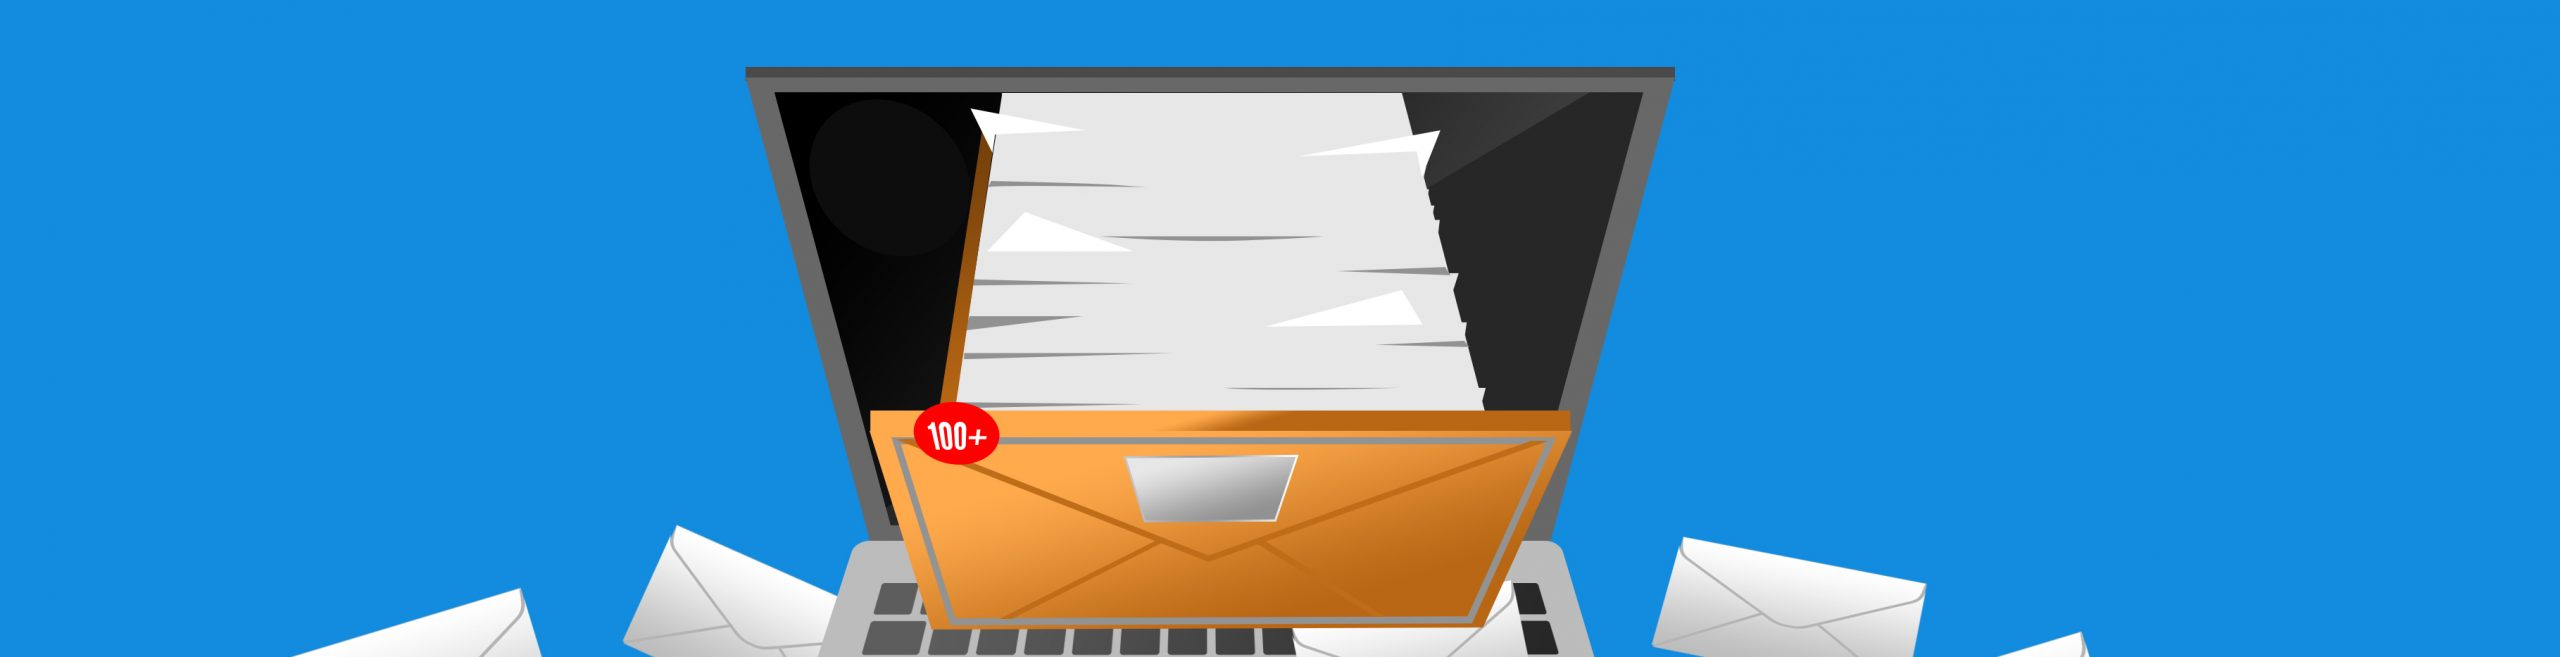 email-management-print